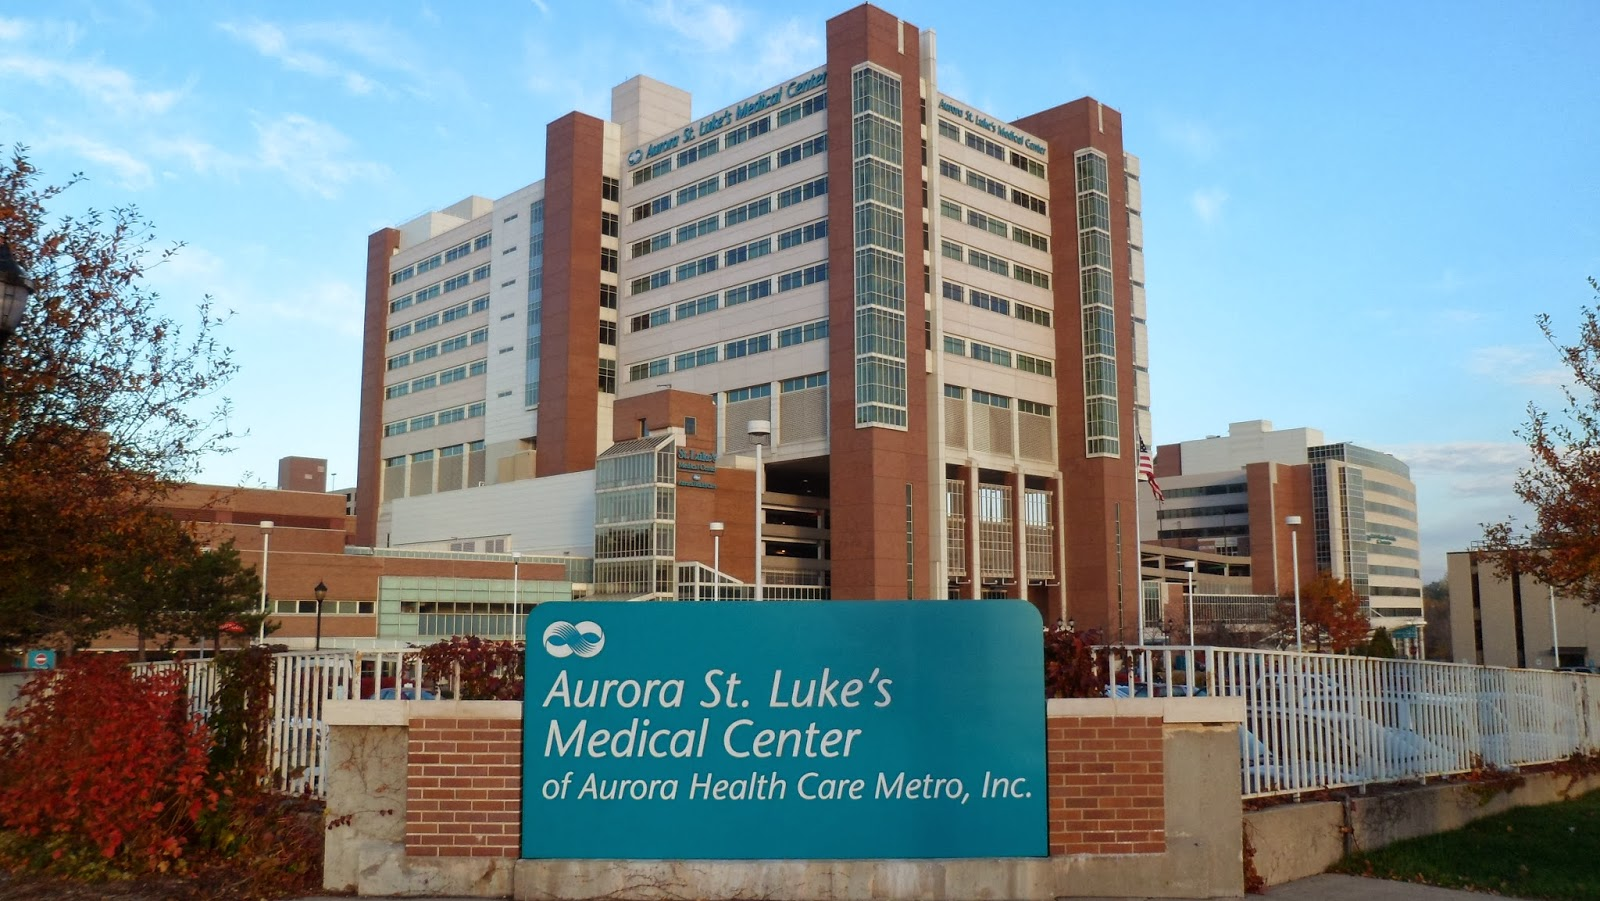 cleveland clinic maps with Aurora St Luke S Medical Center Milwaukee 16 on Doctors Note Delays Deposition In Filner Scandal 218745701 further Aurora St Luke S Medical Center Milwaukee 16 in addition The Texas Medical Center Houstons Medical Mini City as well 130221bhcundergroundmov 2392648 together with Cle airport maps.